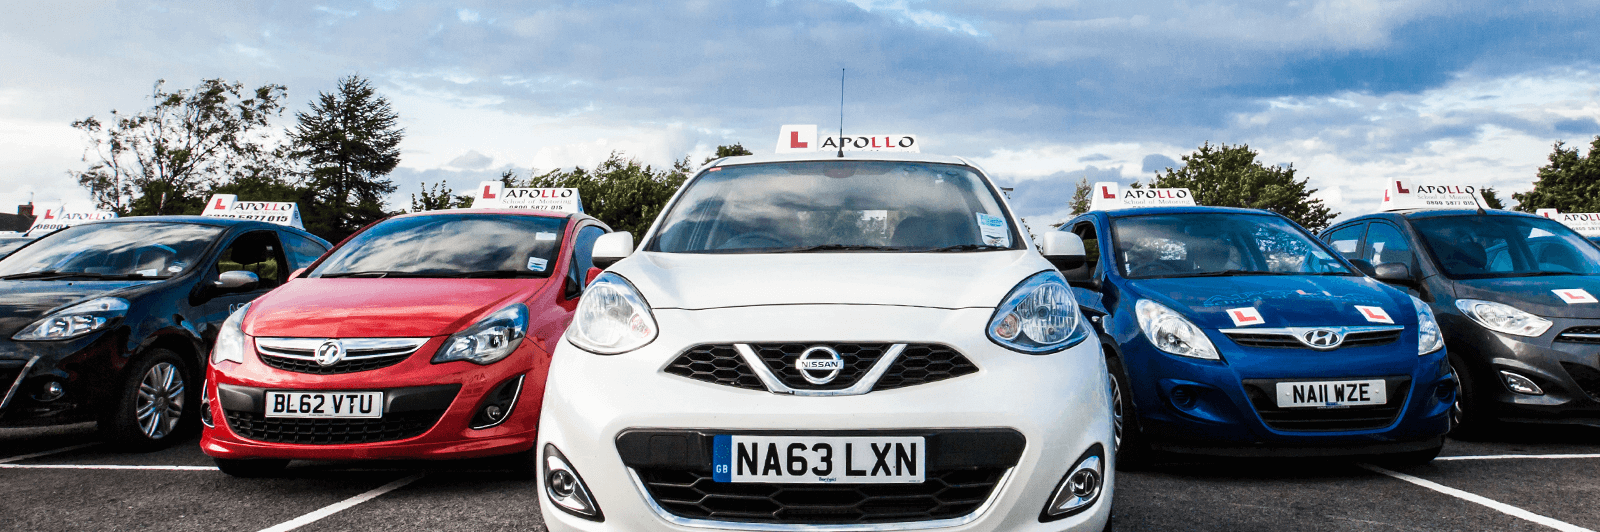 Driving Schools North East